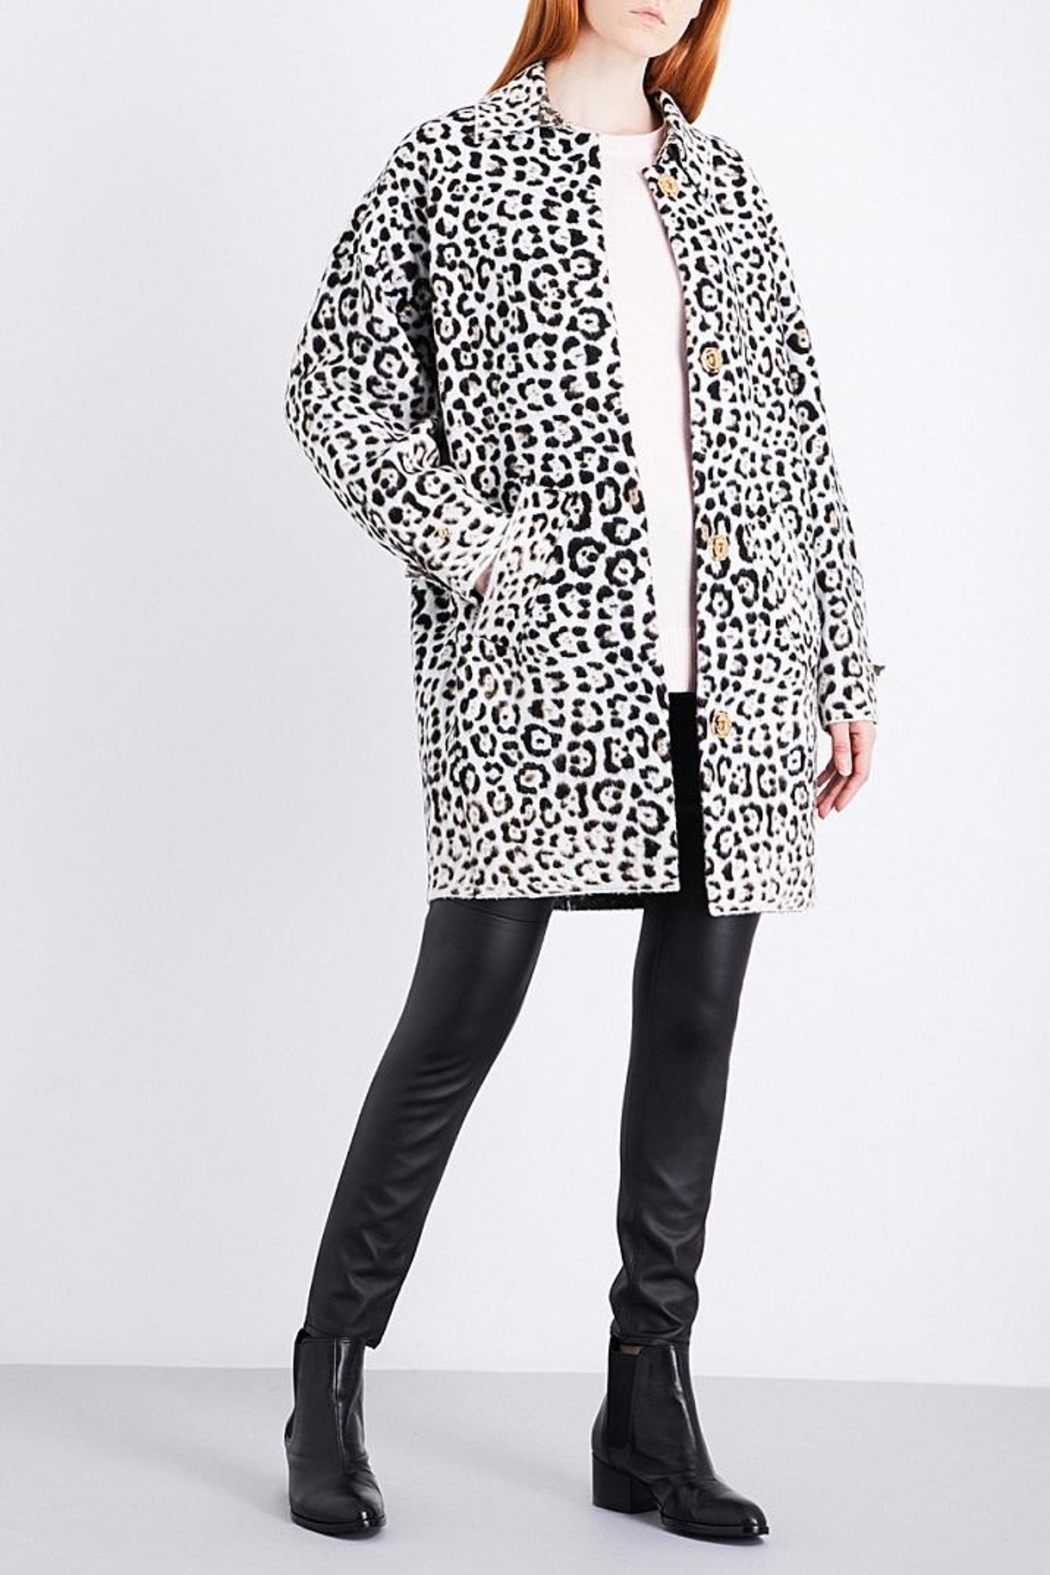 Michael Kors Leopard Wool Blend Jacket - Main Image